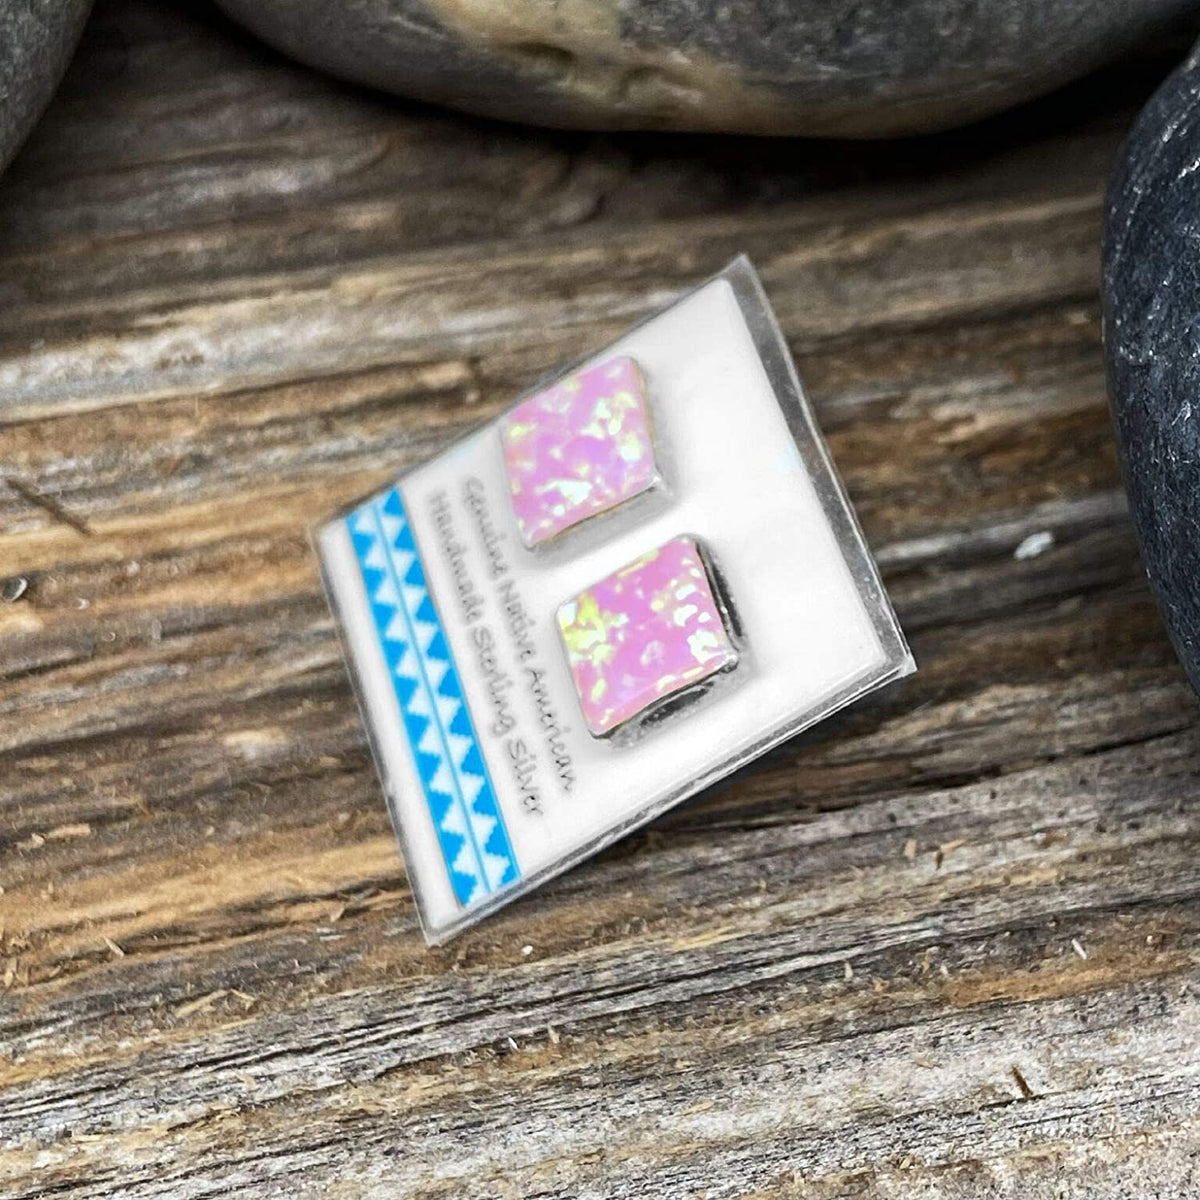 9mm Desert Opal Stud Earrings, 925 Sterling Silver, Native American USA Handmade, Nickle Free, Pink Synthetic Opal, Square